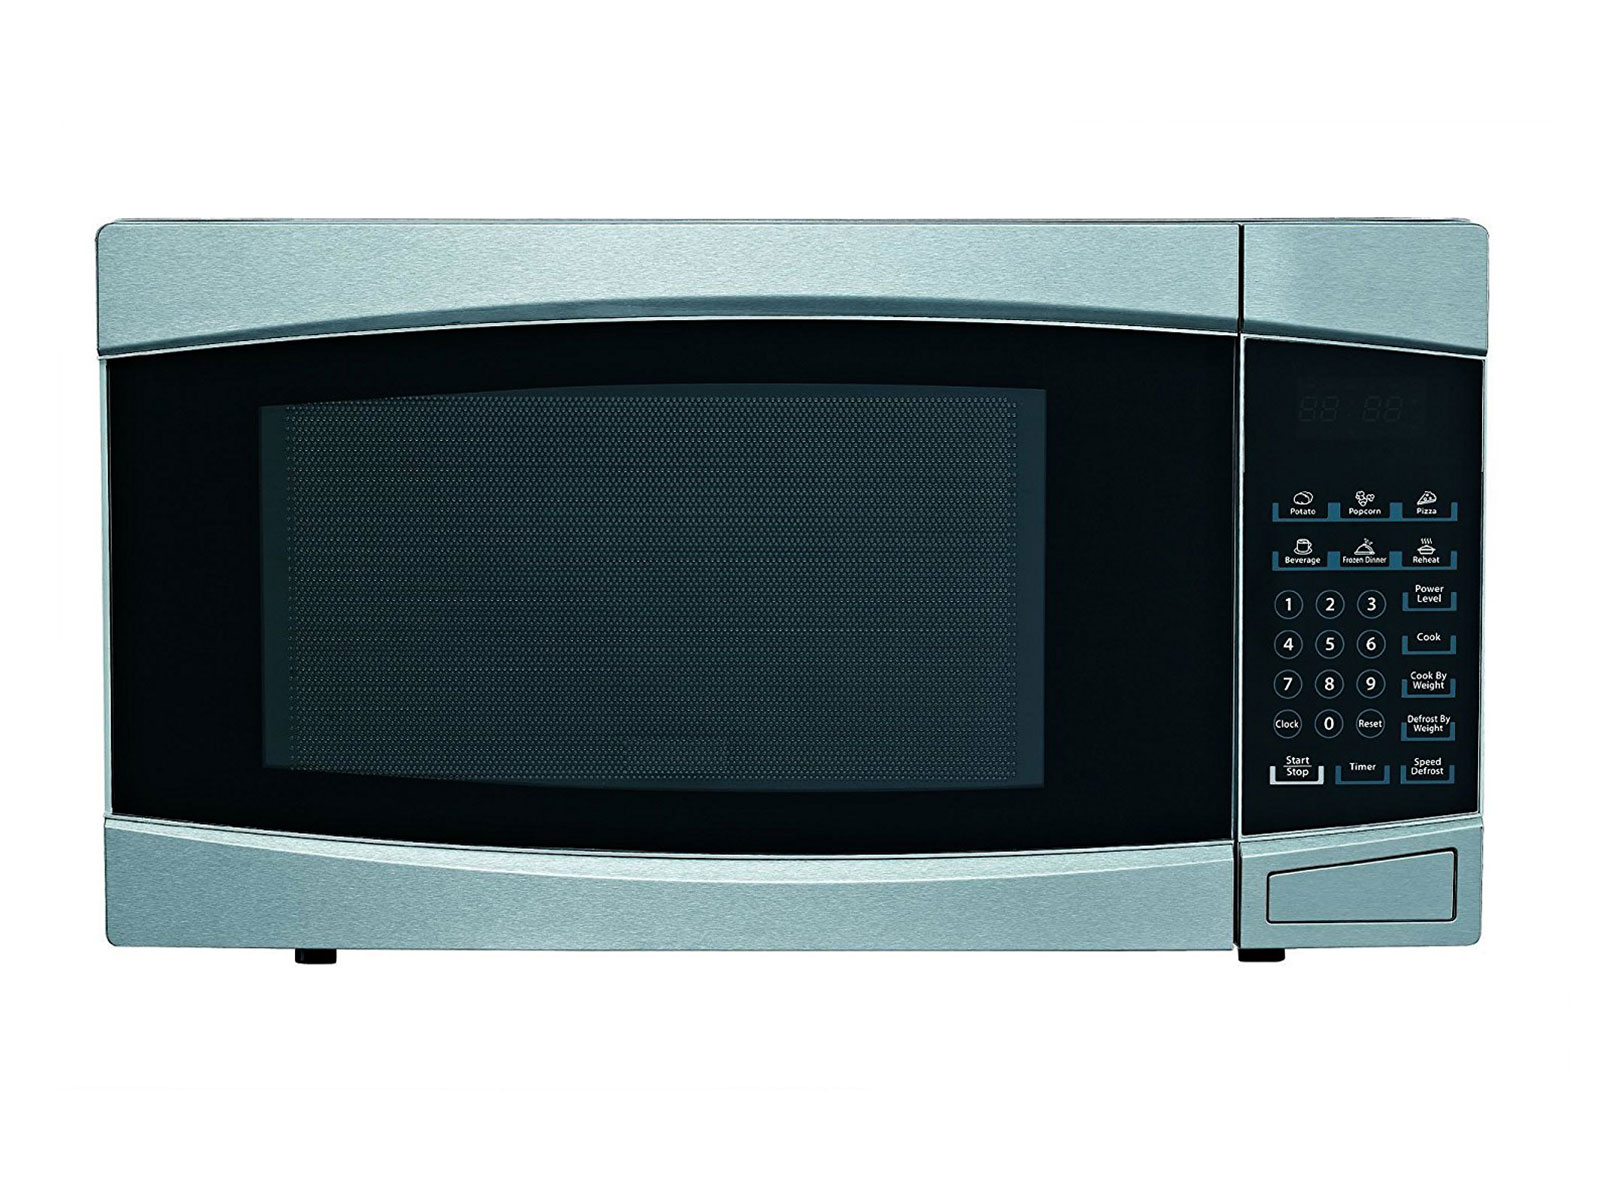 RCA Stainless Steel Microwave, 1.4 cu. ft.